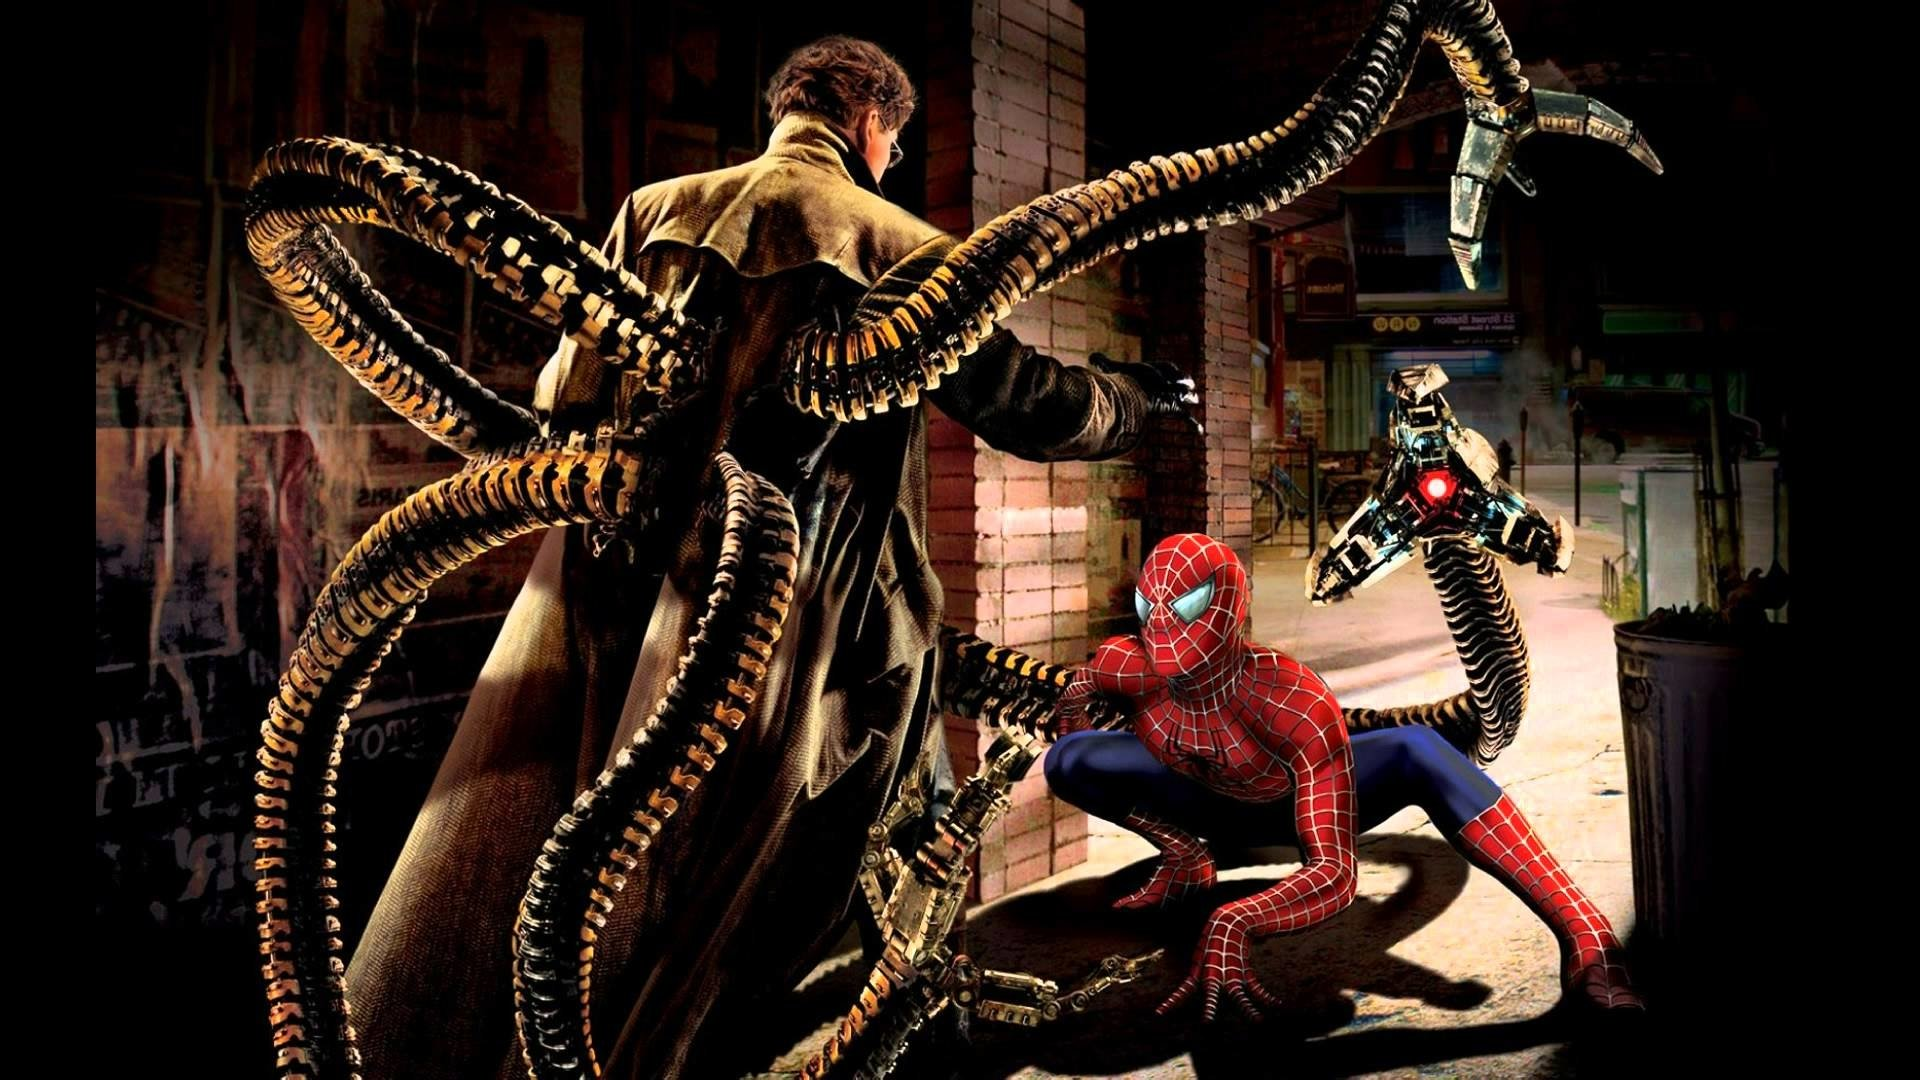 spider-man 2 wallpaper and background image | 1680x1050 | id:315239